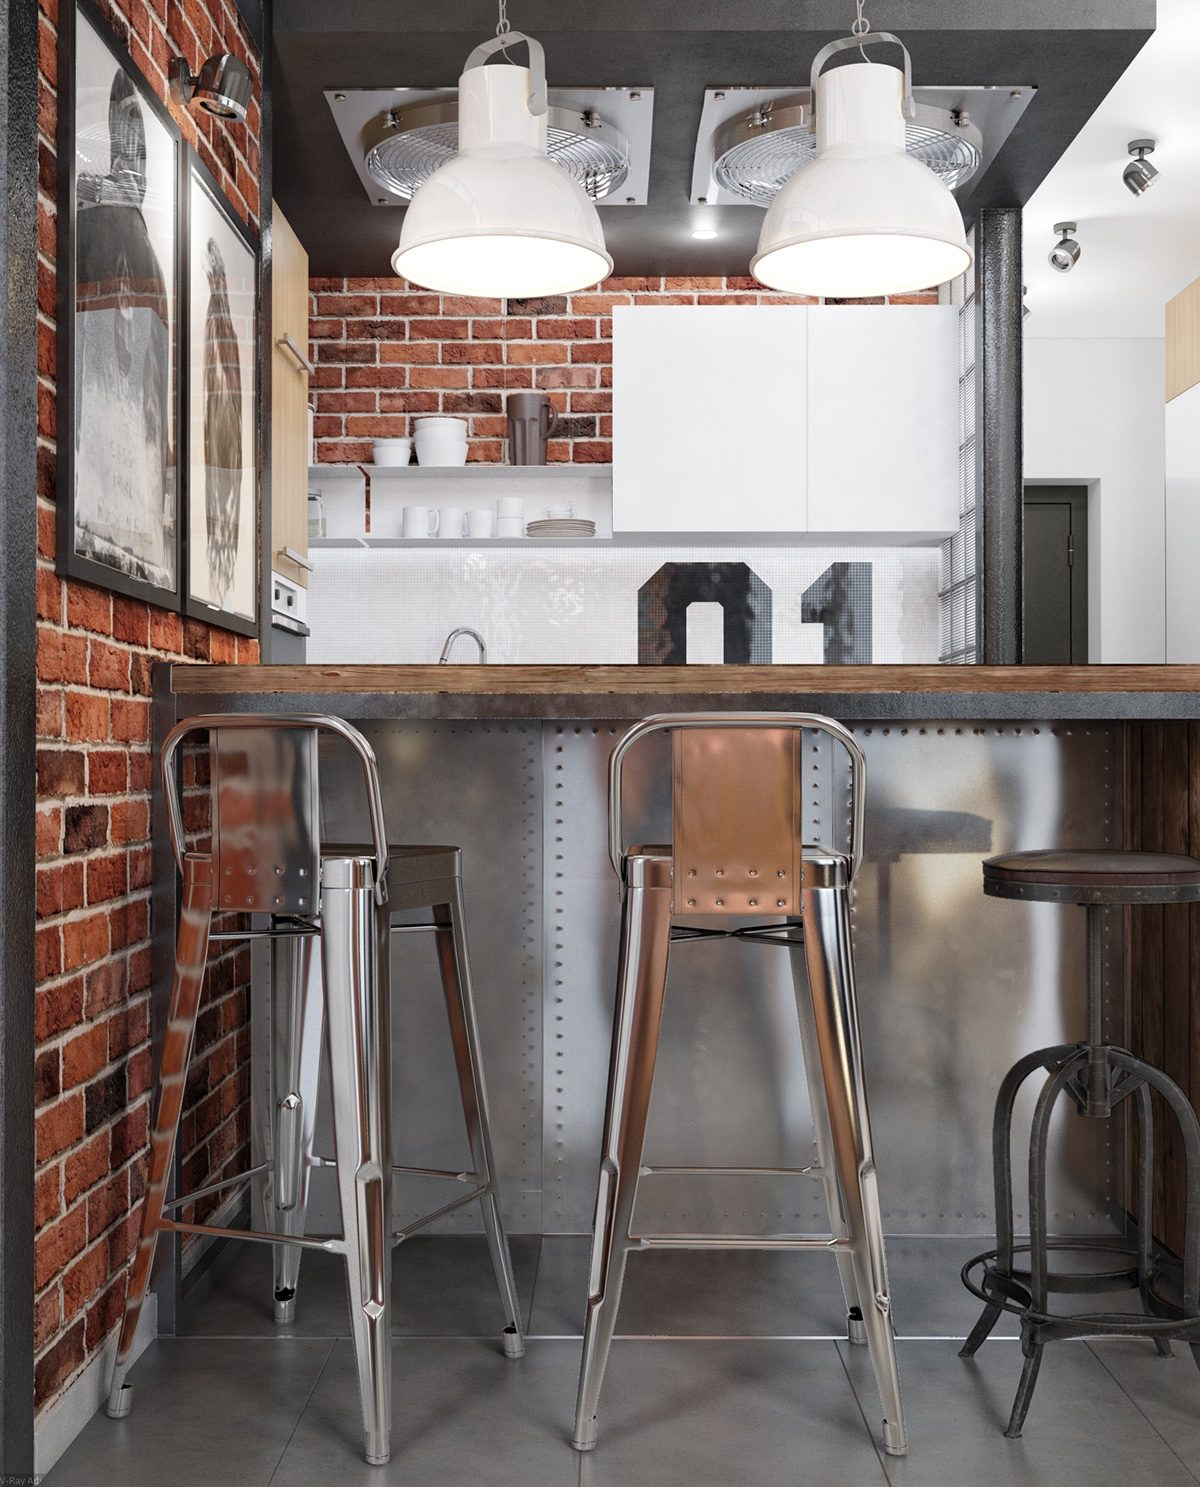 brick-and-metal kitchen bar stool